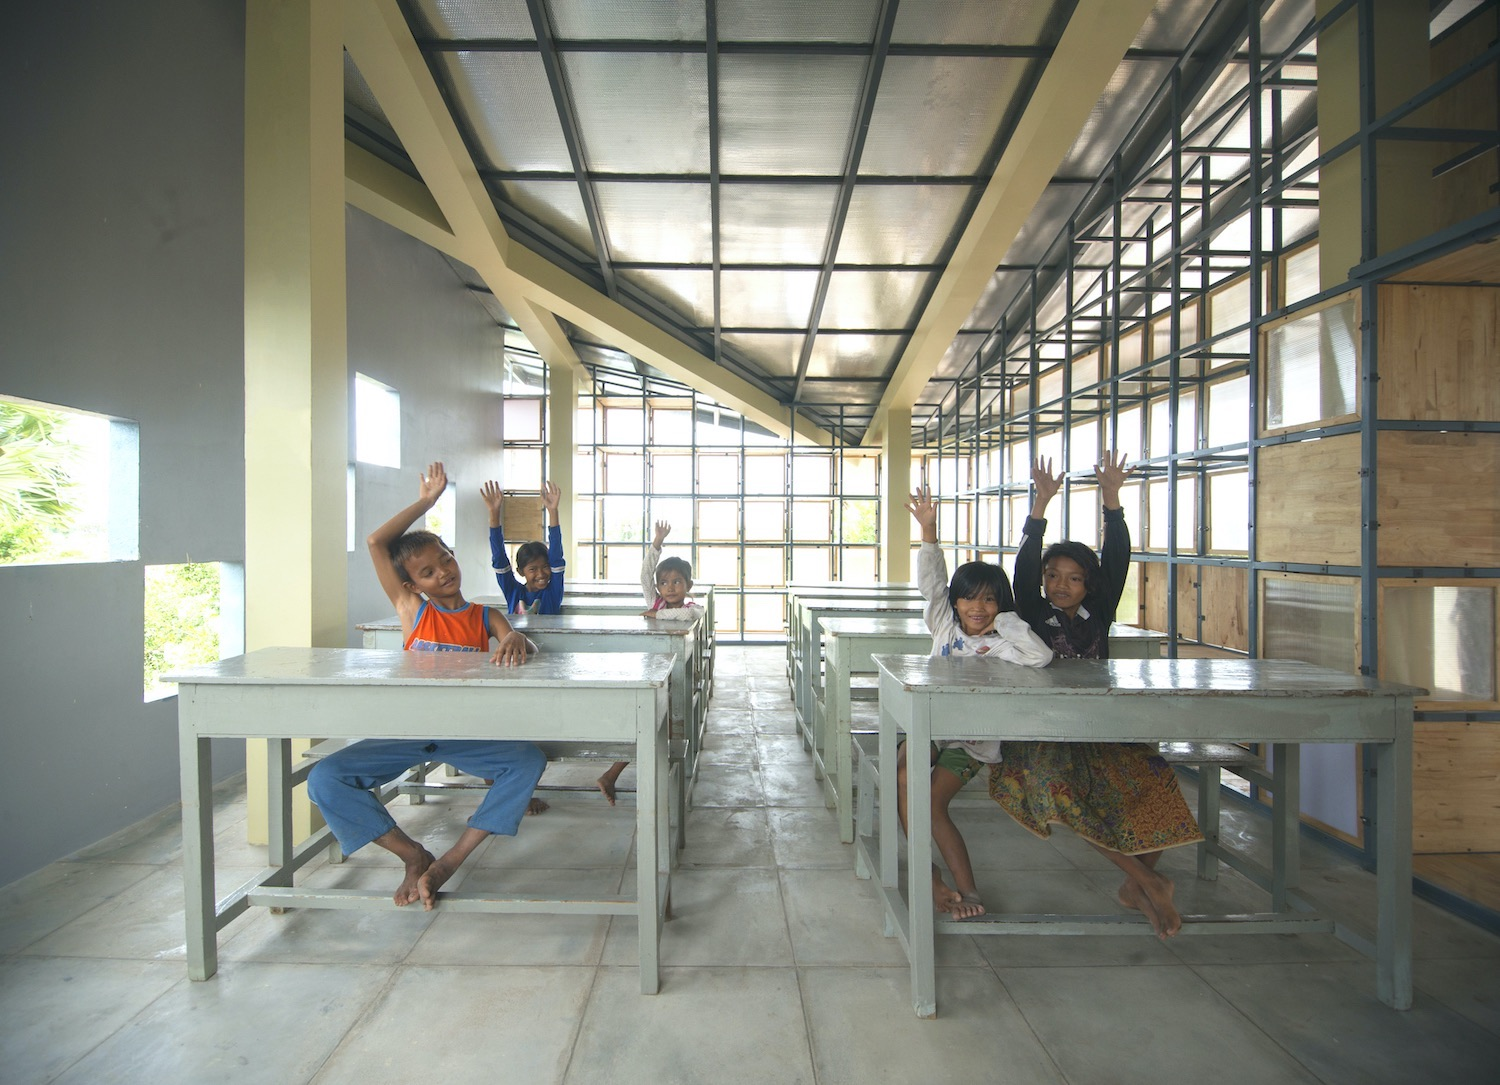 students rising their hand while sitting on school bench and desk